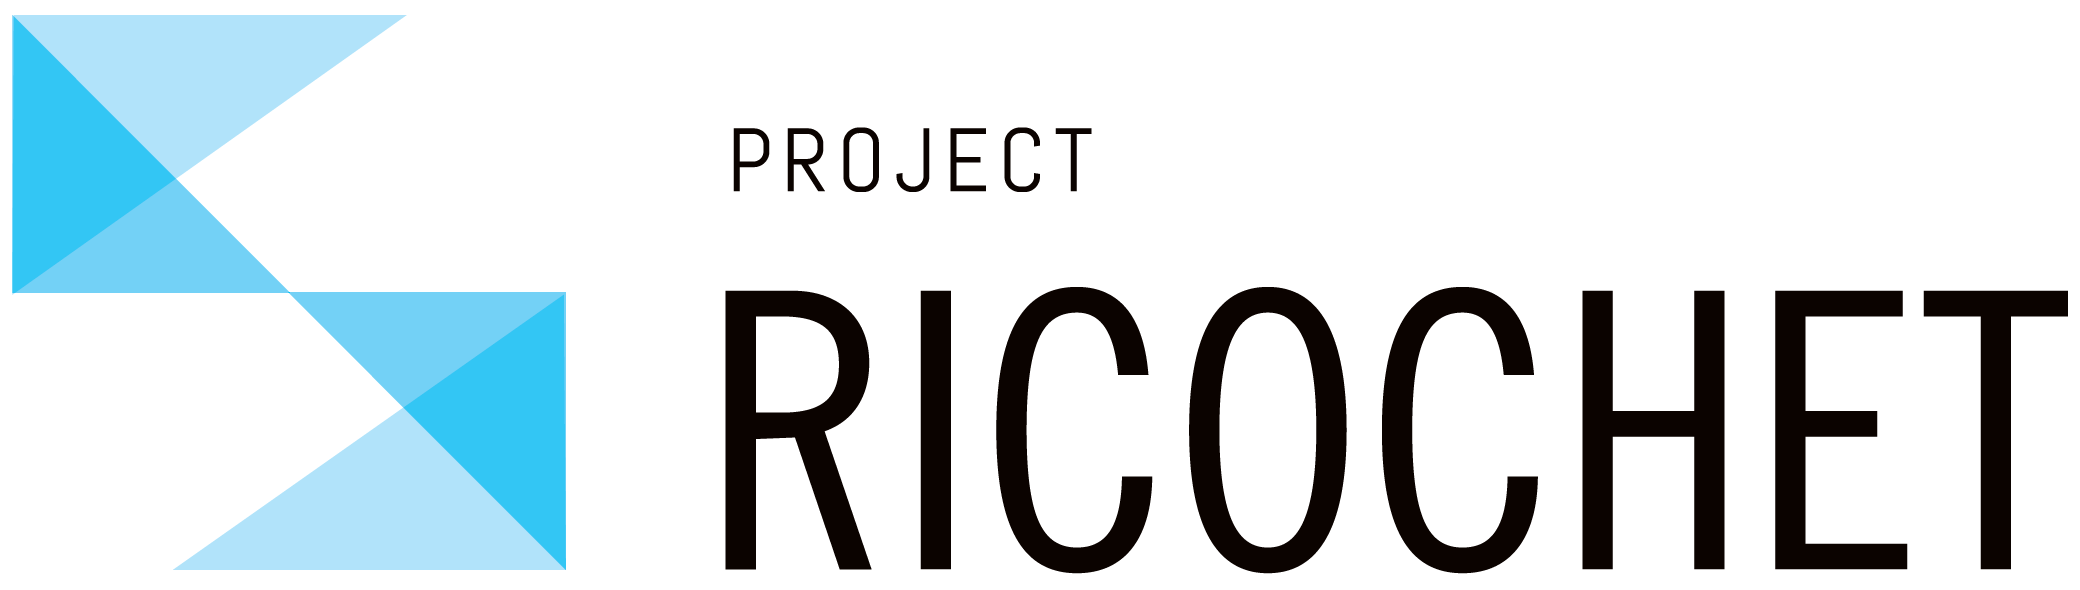 Project Ricochet